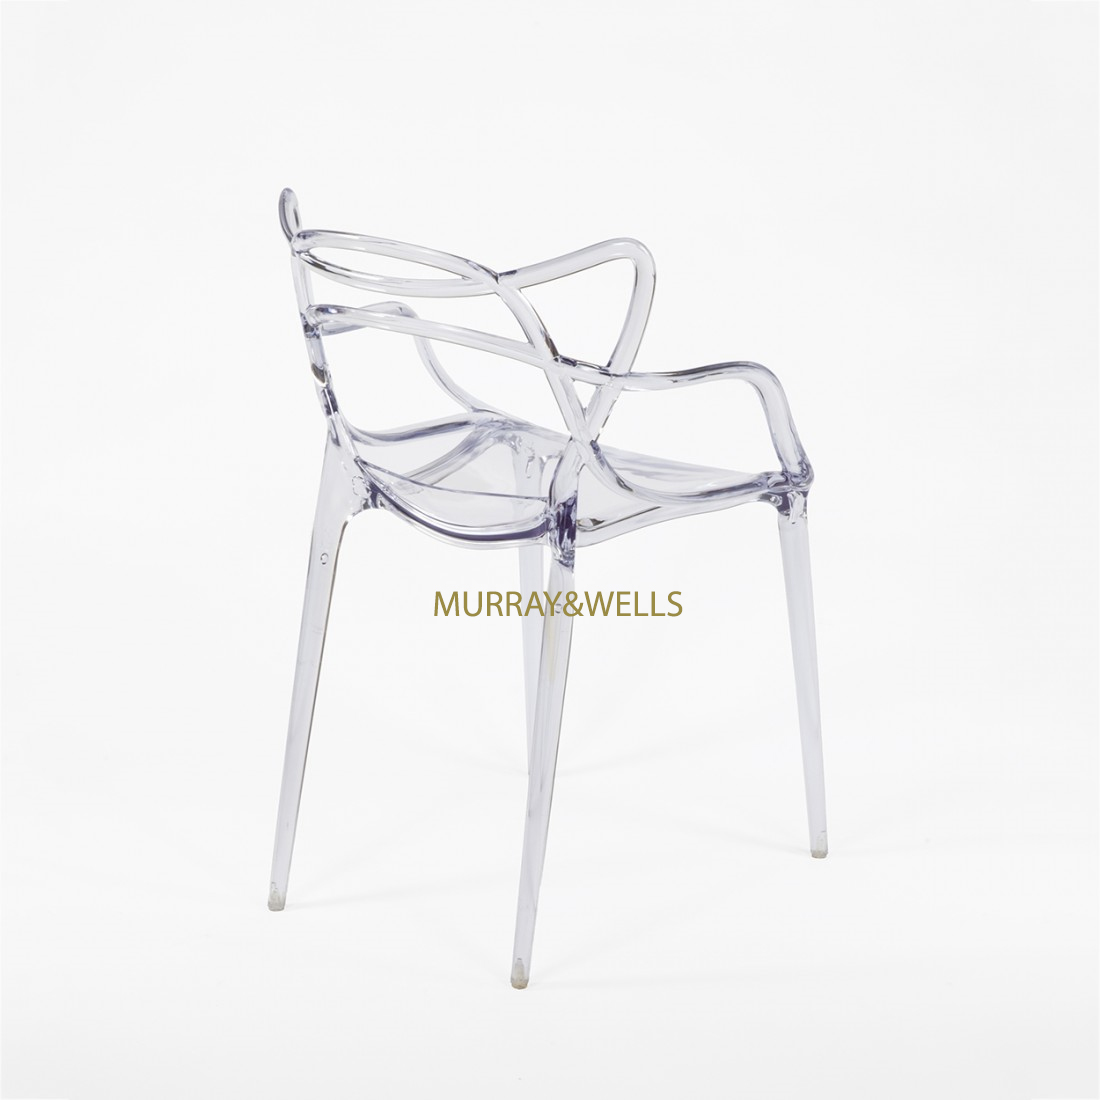 Replica Masters Ghost Chair Murray amp Wells : Masters Ghost Chair Clear from murrayandwells.co.za size 1100 x 1100 jpeg 141kB